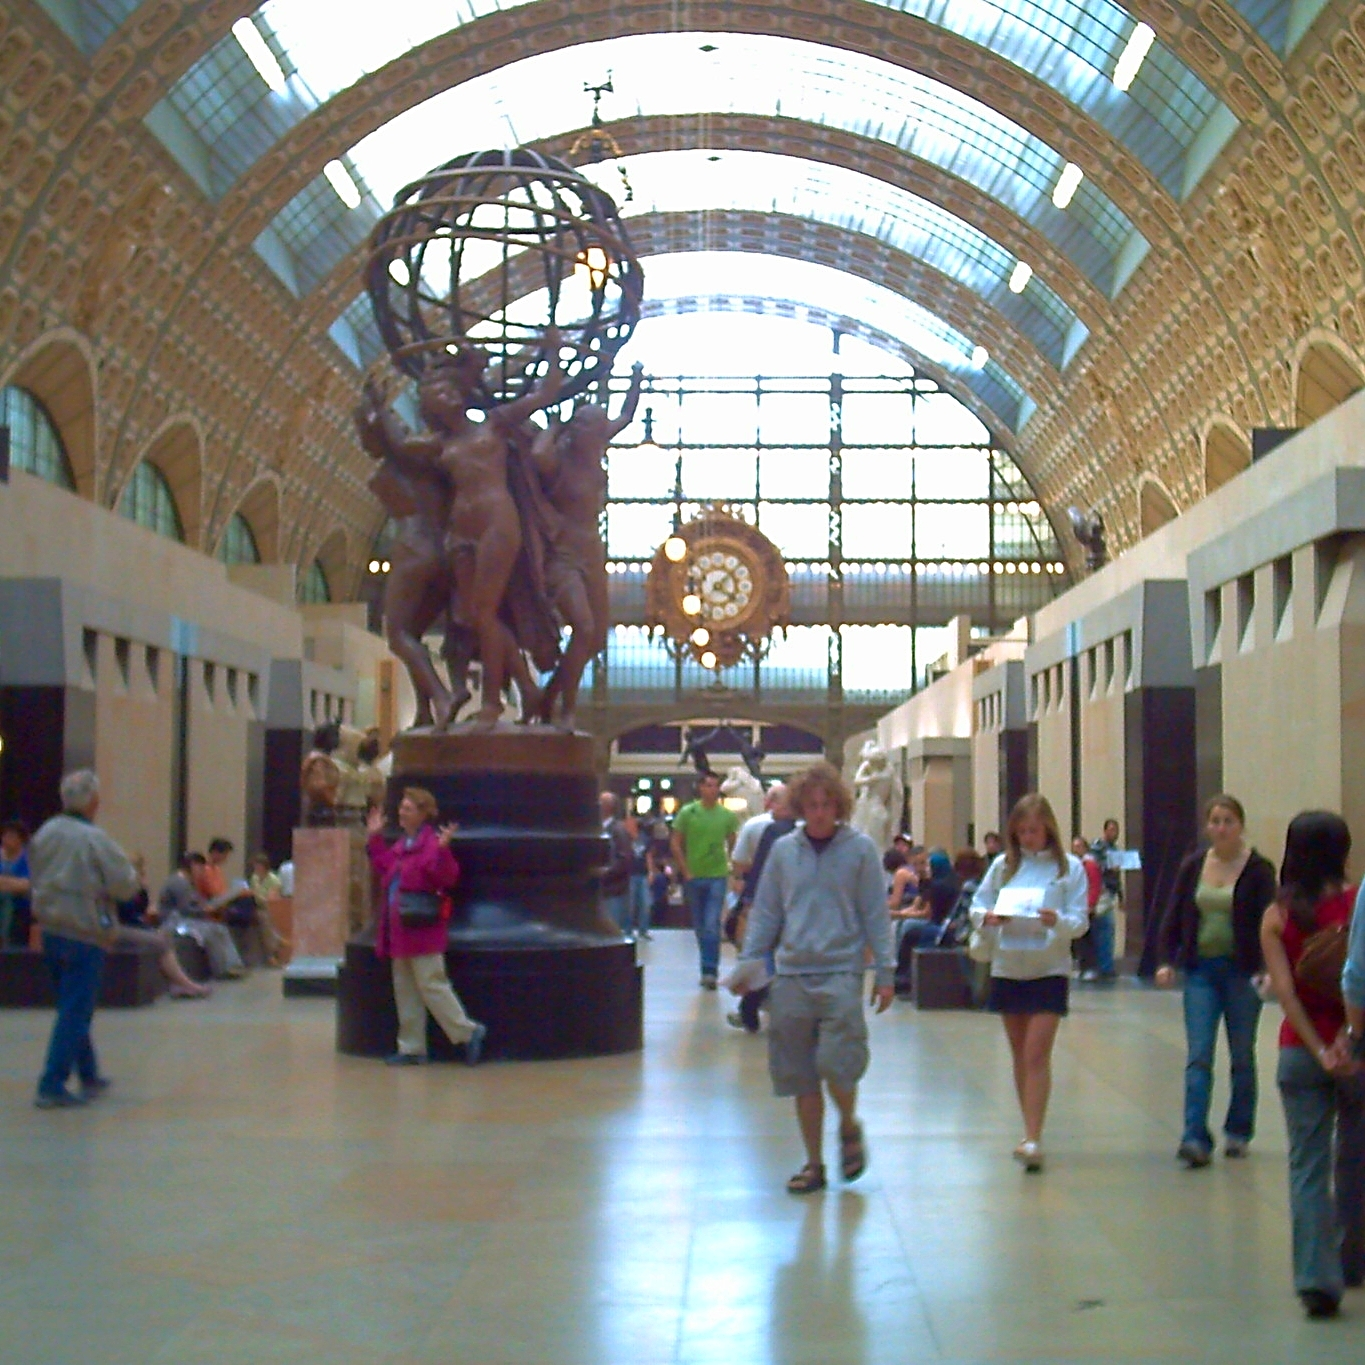 Musée d'Orsay Eingangshalle